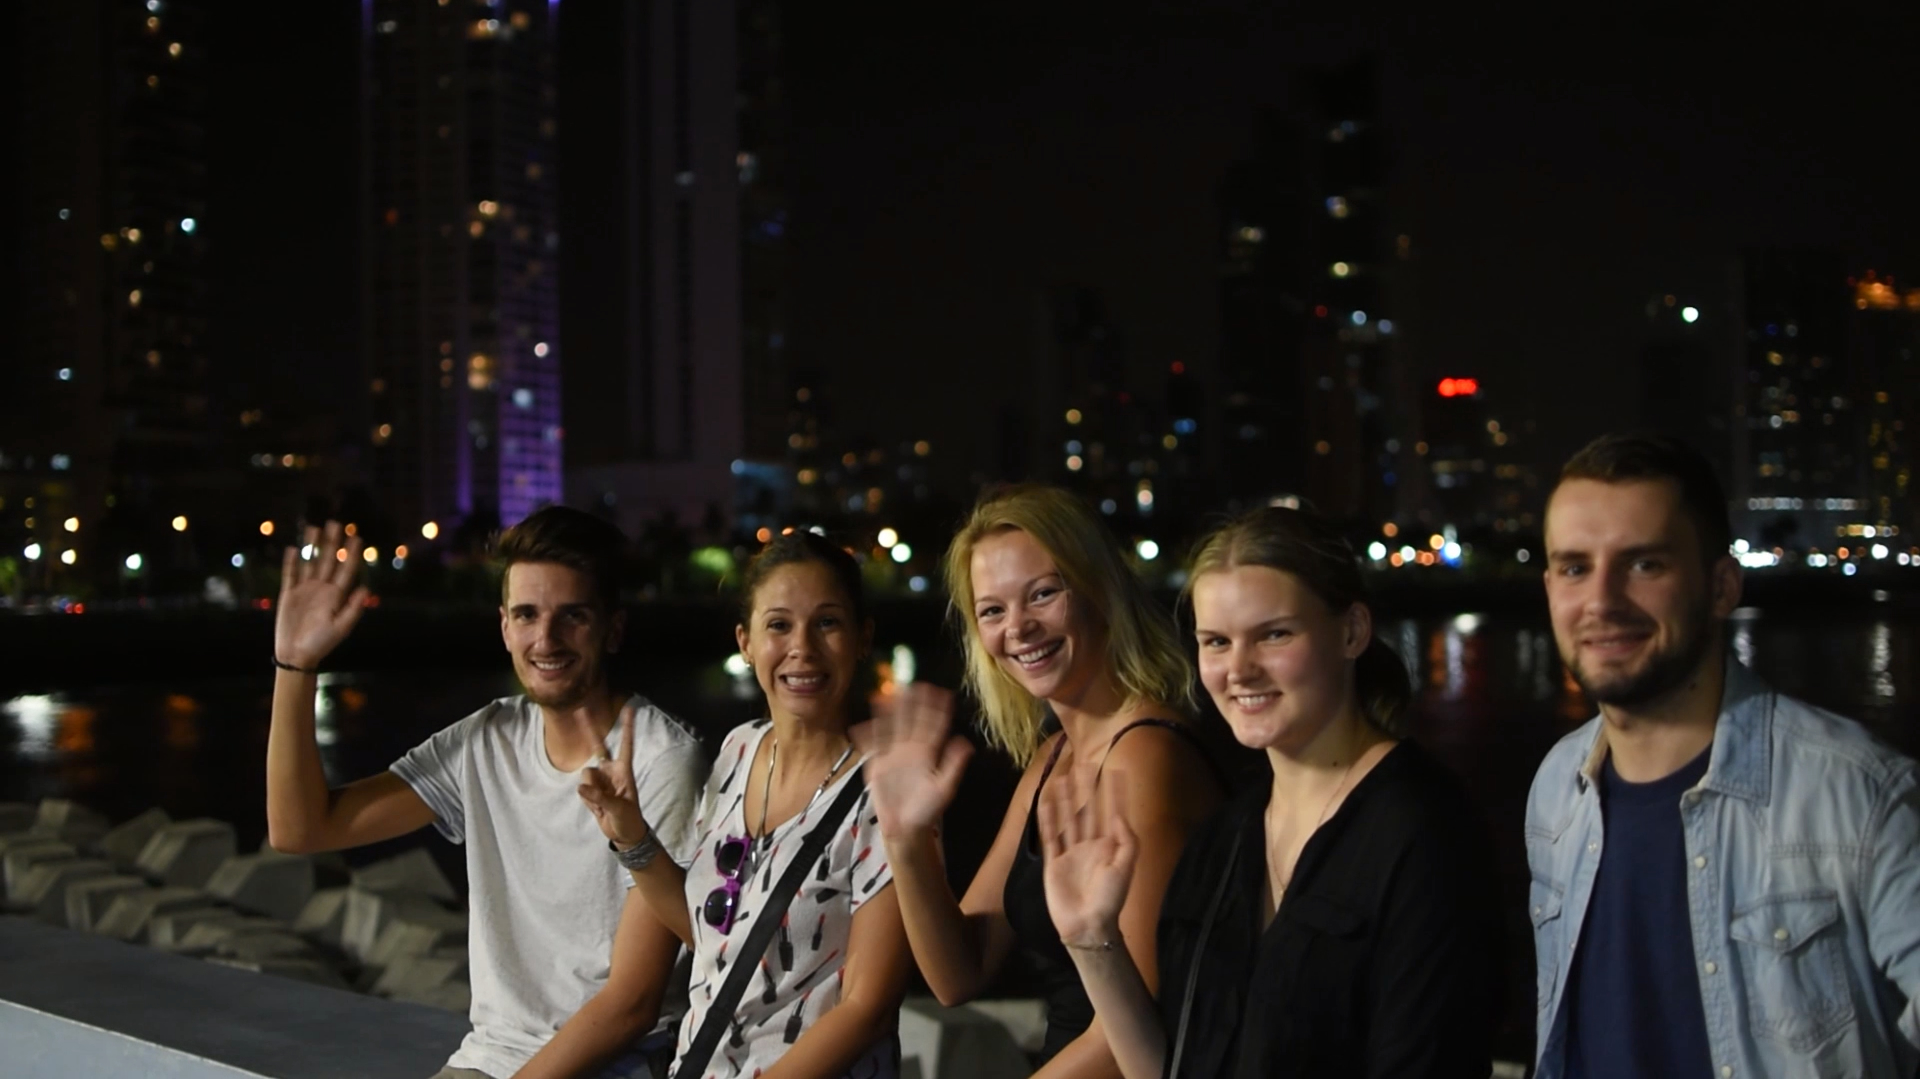 Habla Ya students hanging out in Panama City in the evening with the skyline and lights in the back